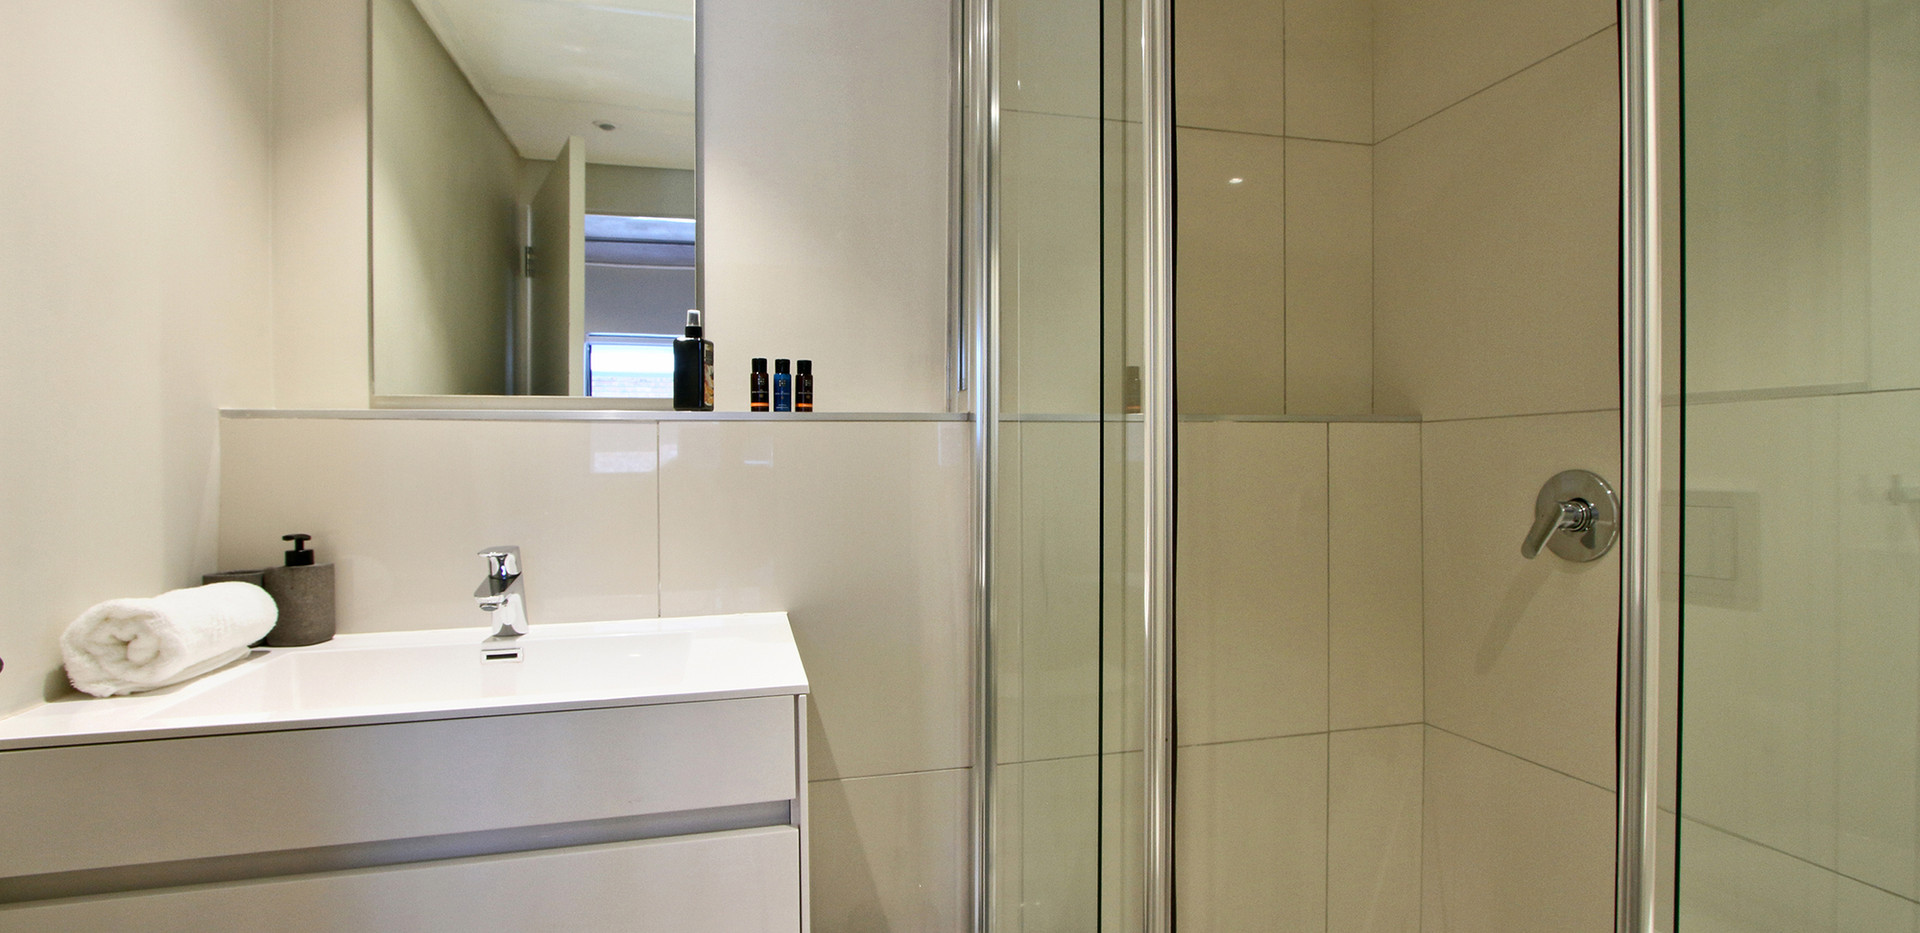 Bathroom_Penthouse_Docklands_609_ITC_2.j